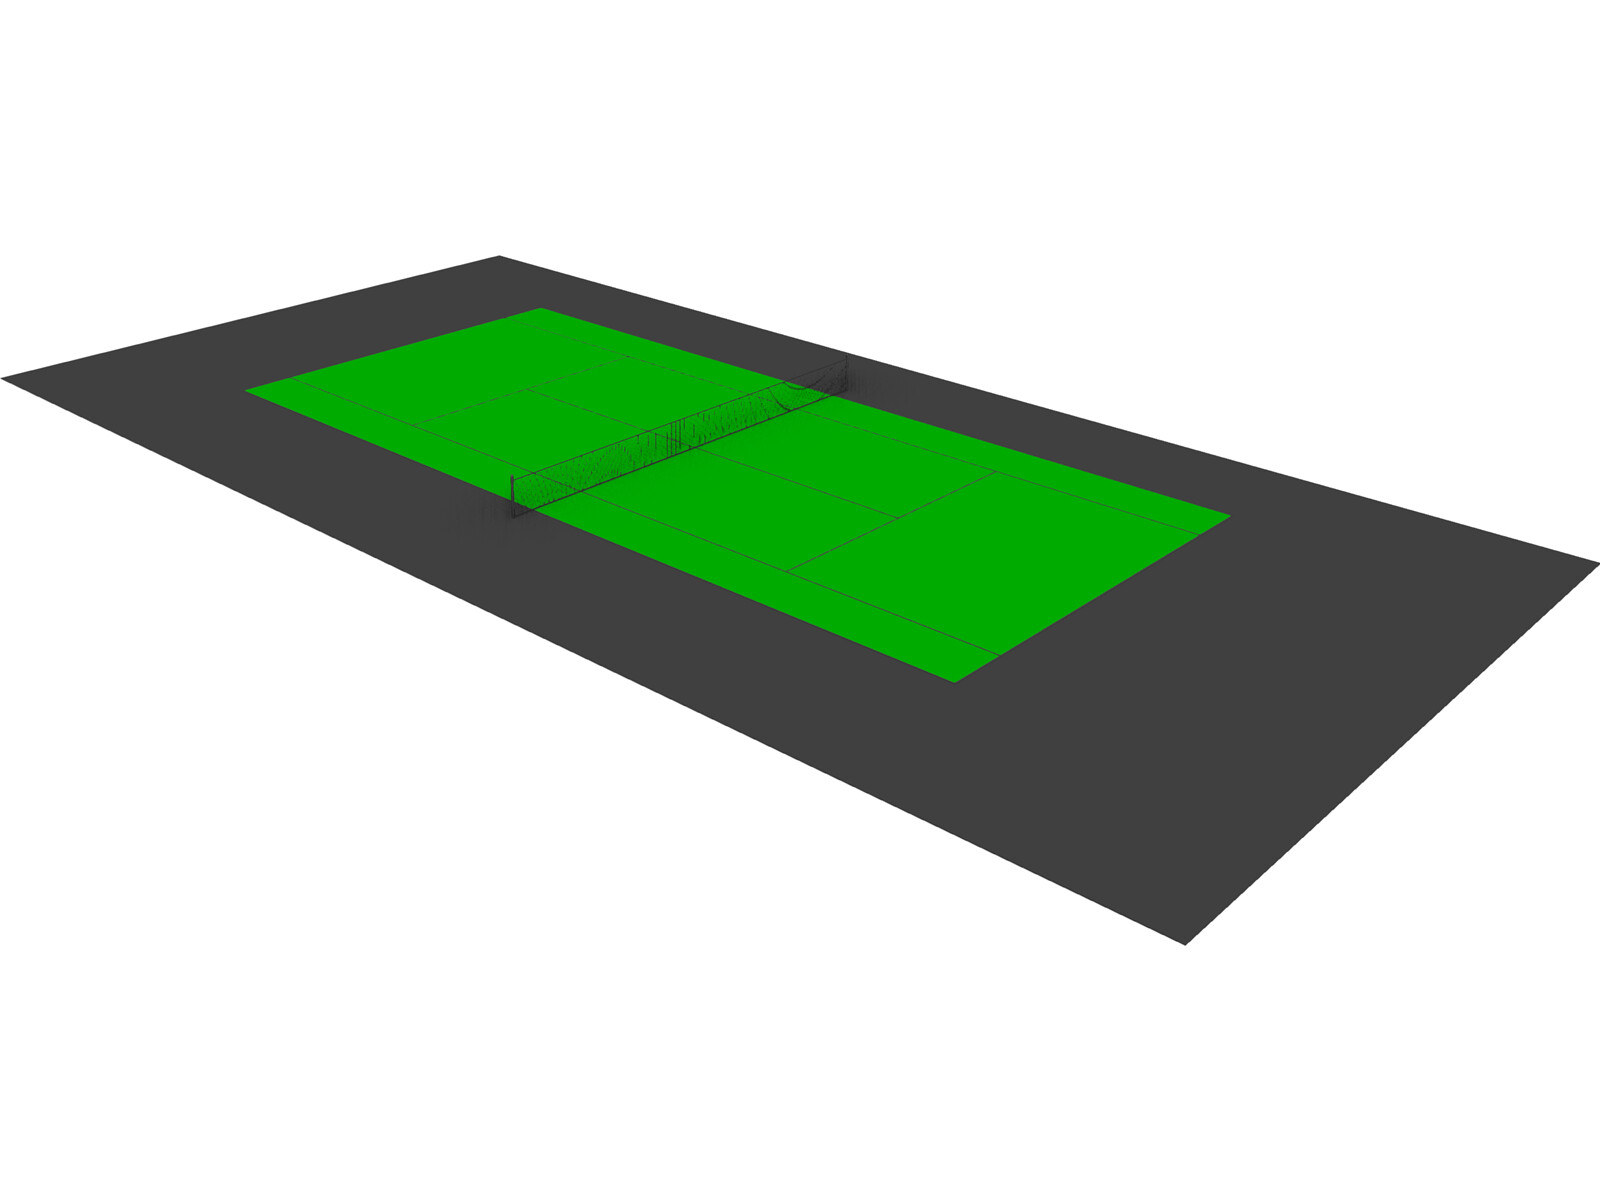 Tennis Court 3D CAD Model